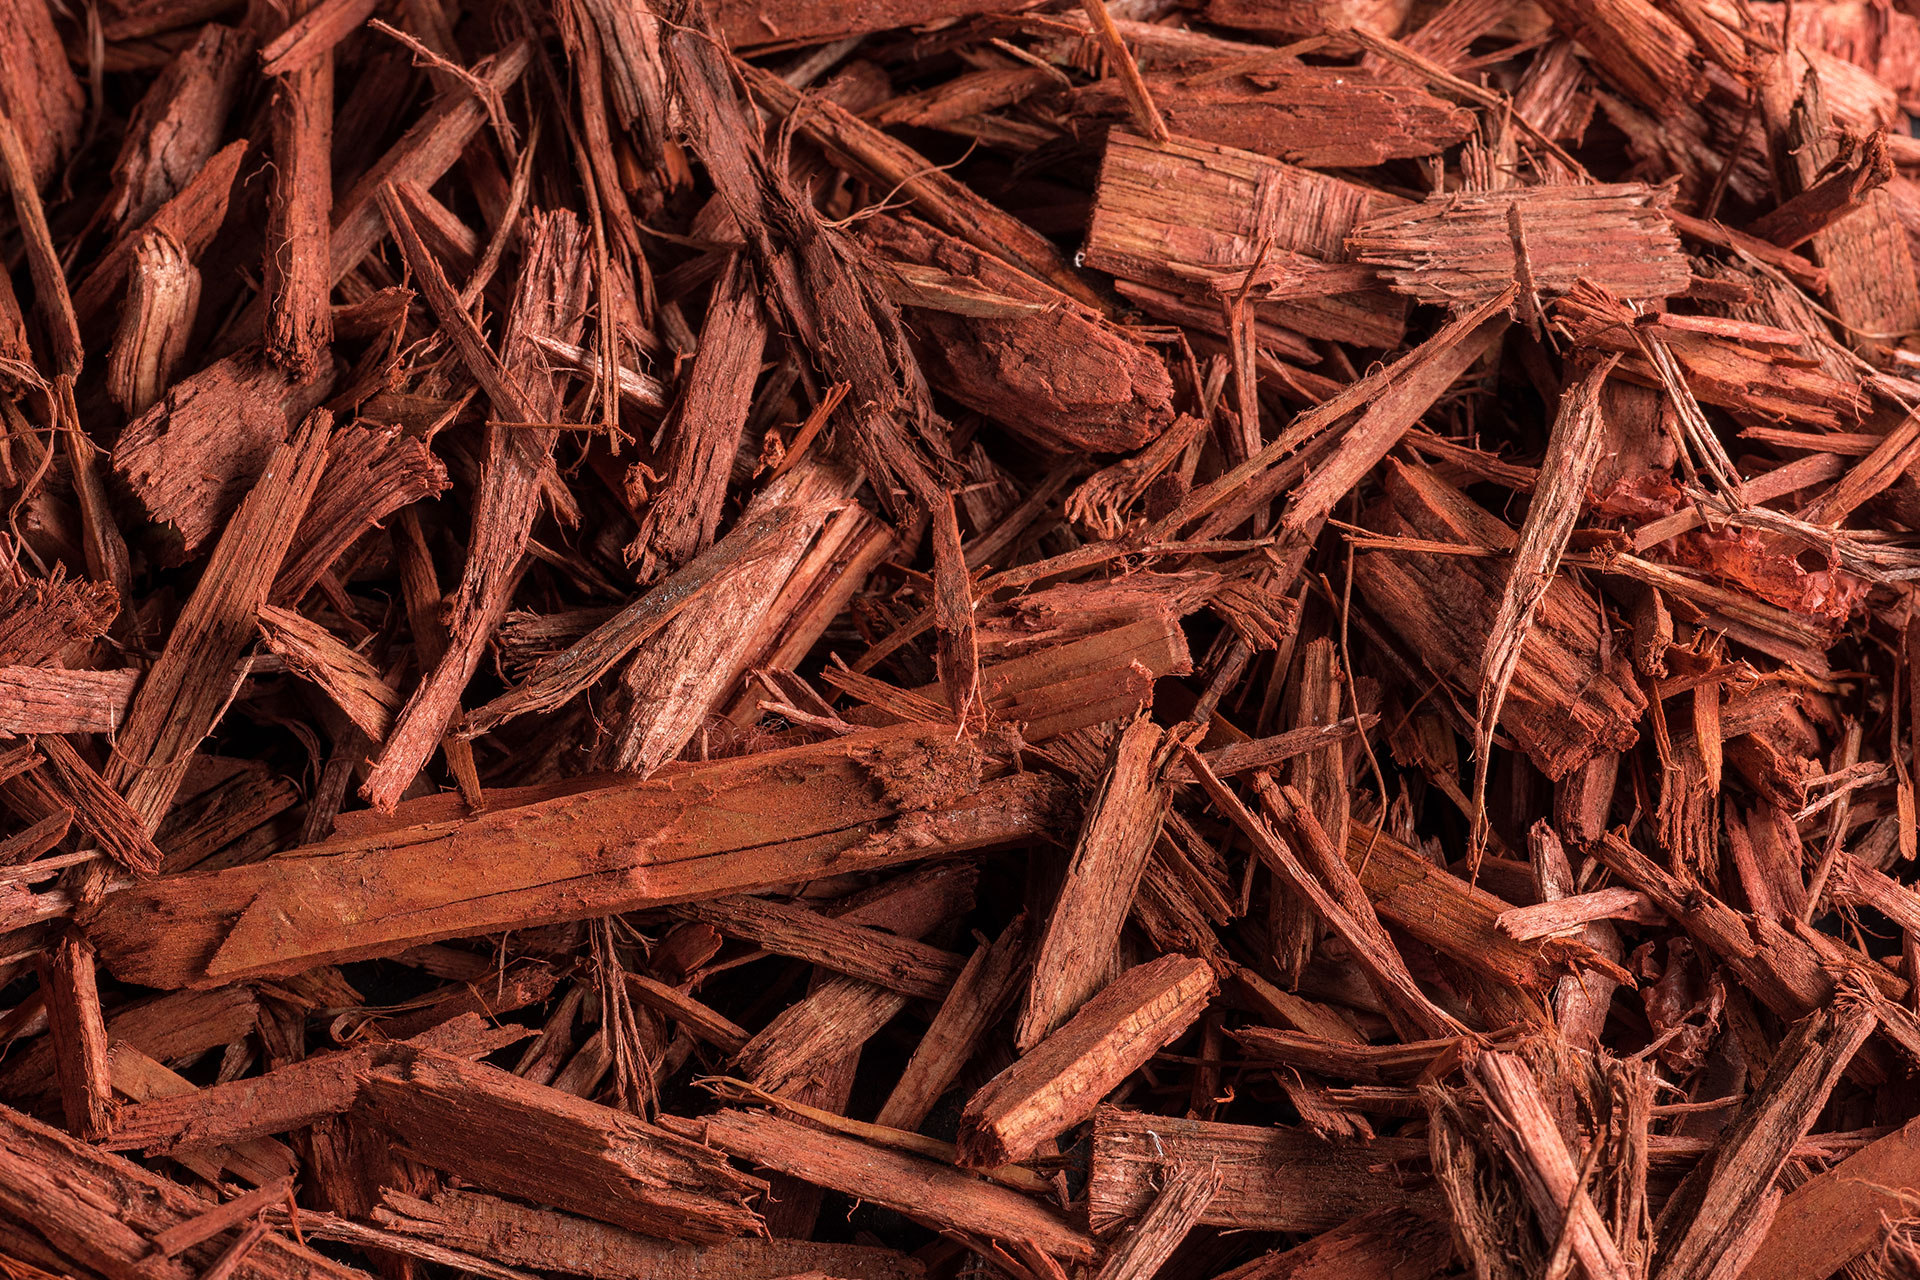 Landscaping Ground Covers: Red Wood Chips